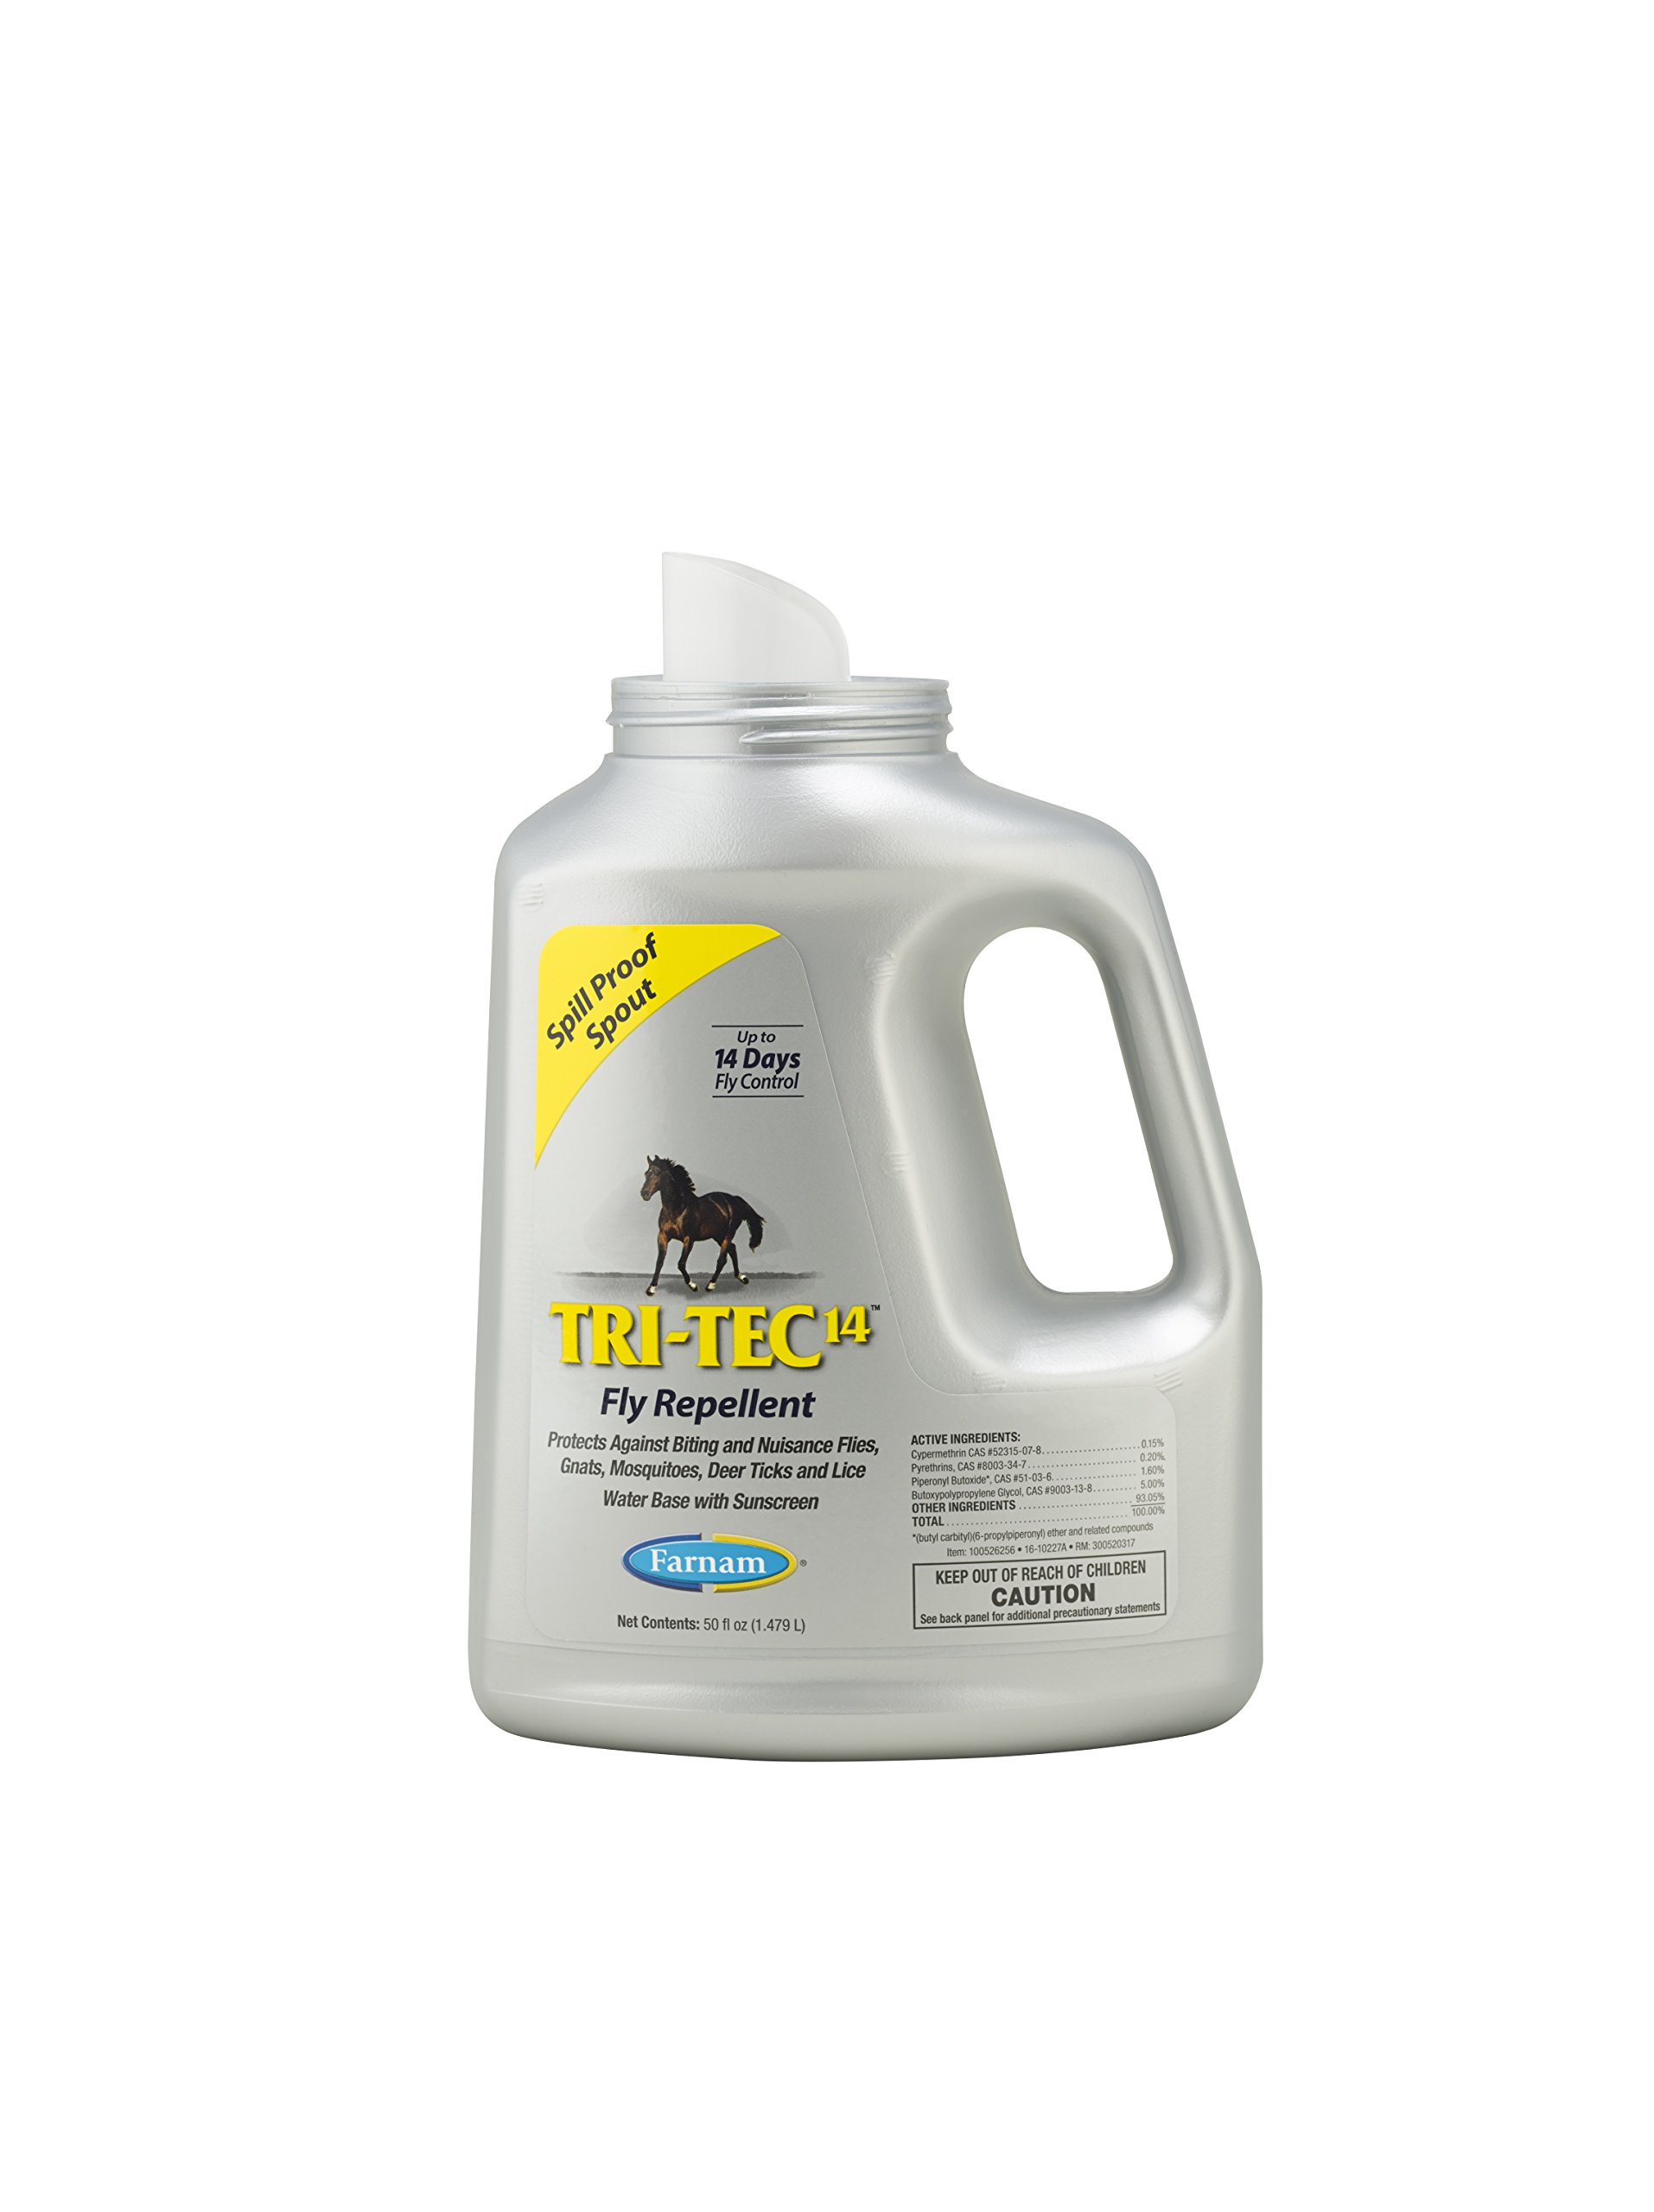 Farnam Tri-Tec 14 Fly Repellent, 50 fl oz Easy Pour Spout